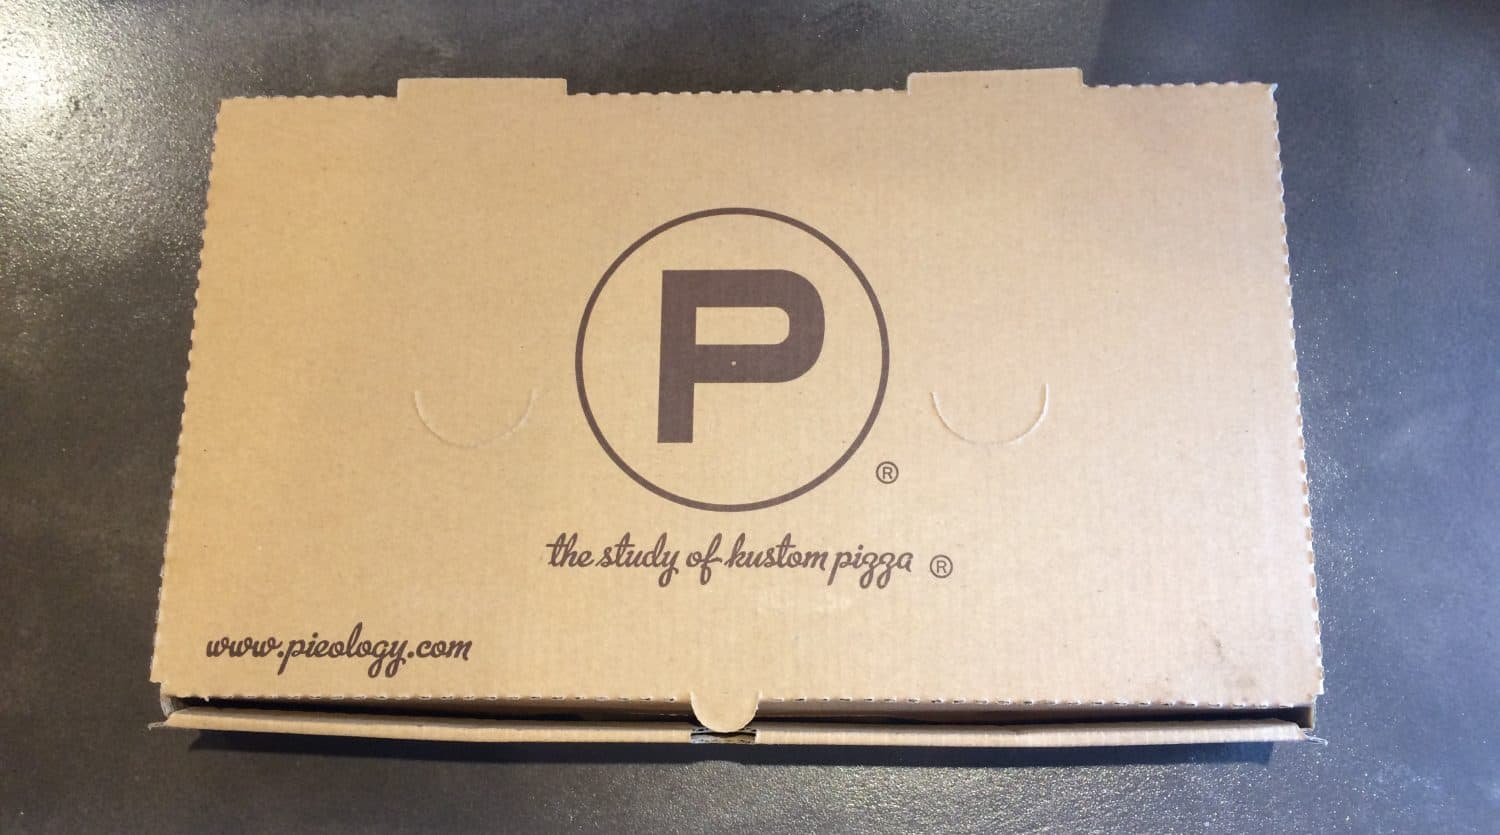 Pieology Pizza - Take Out Box